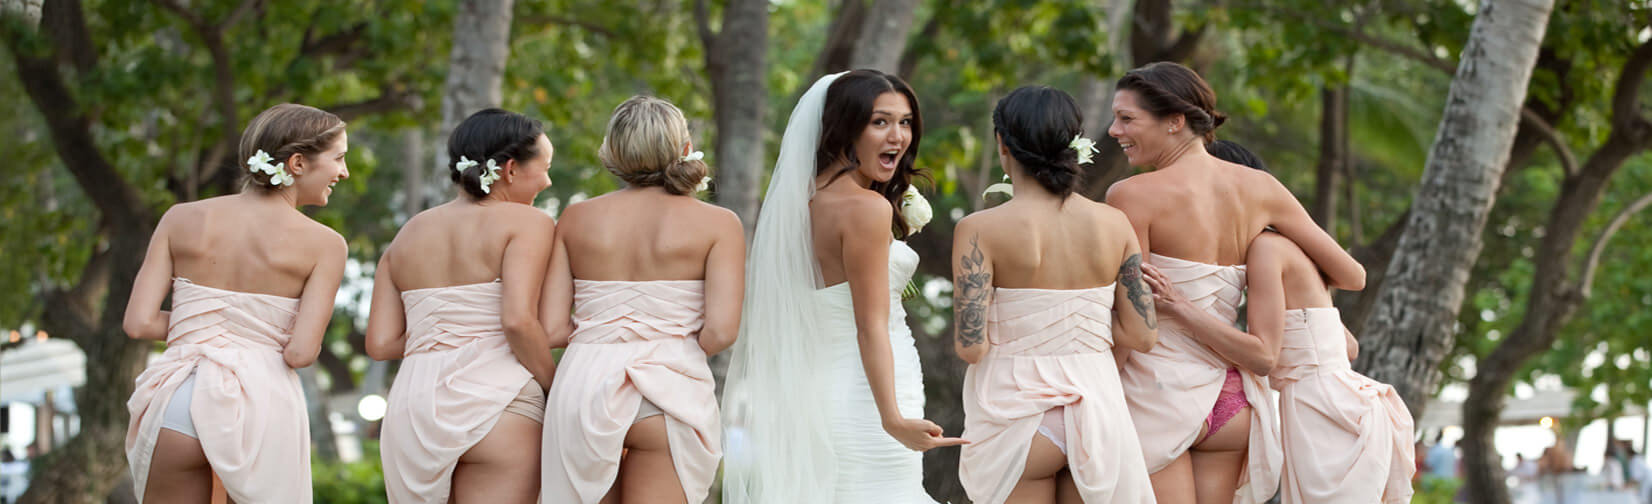 strange yet funny wedding pictures